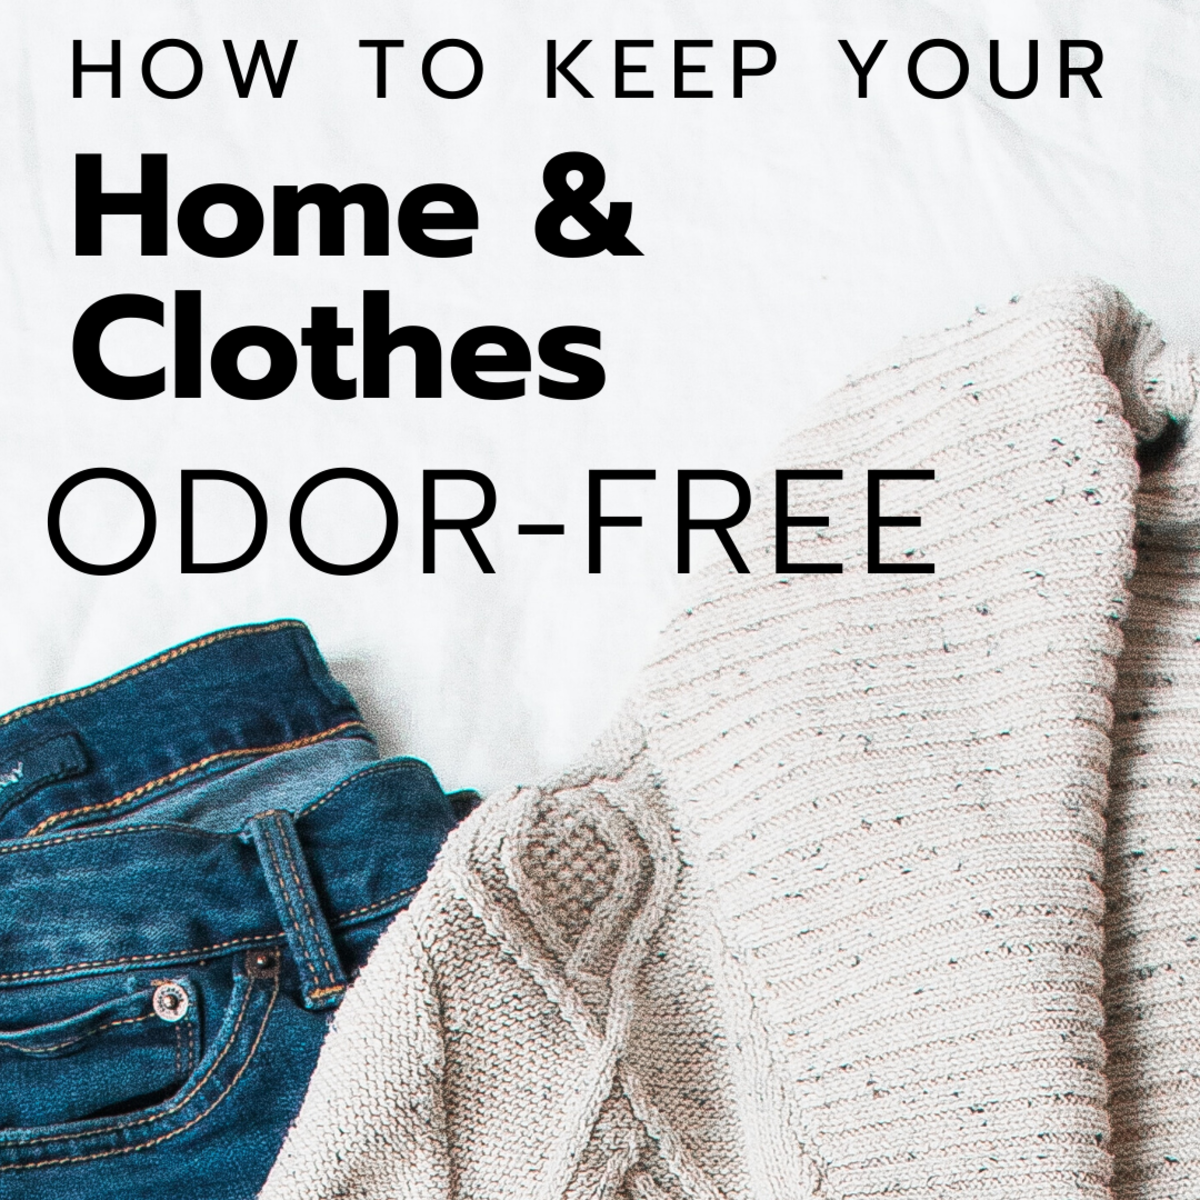 How to Get Food Smells Out of Clothes and Fabric